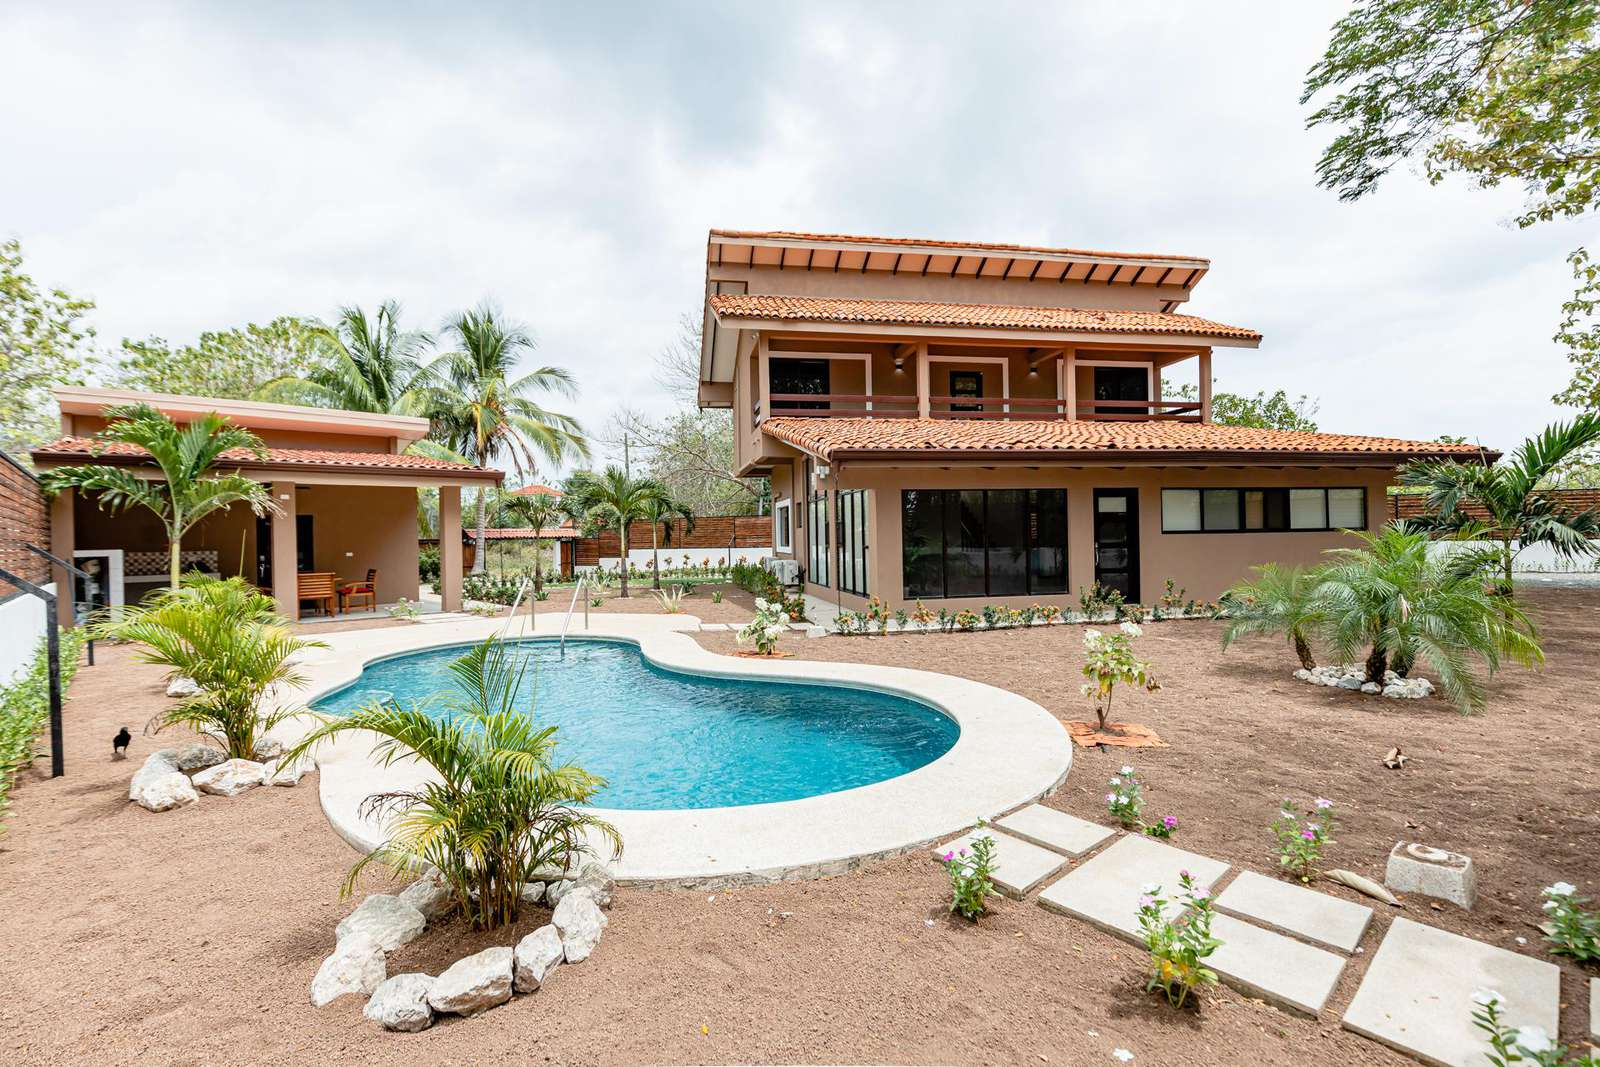 Pool- Main Hose- Dechated Apartment - property